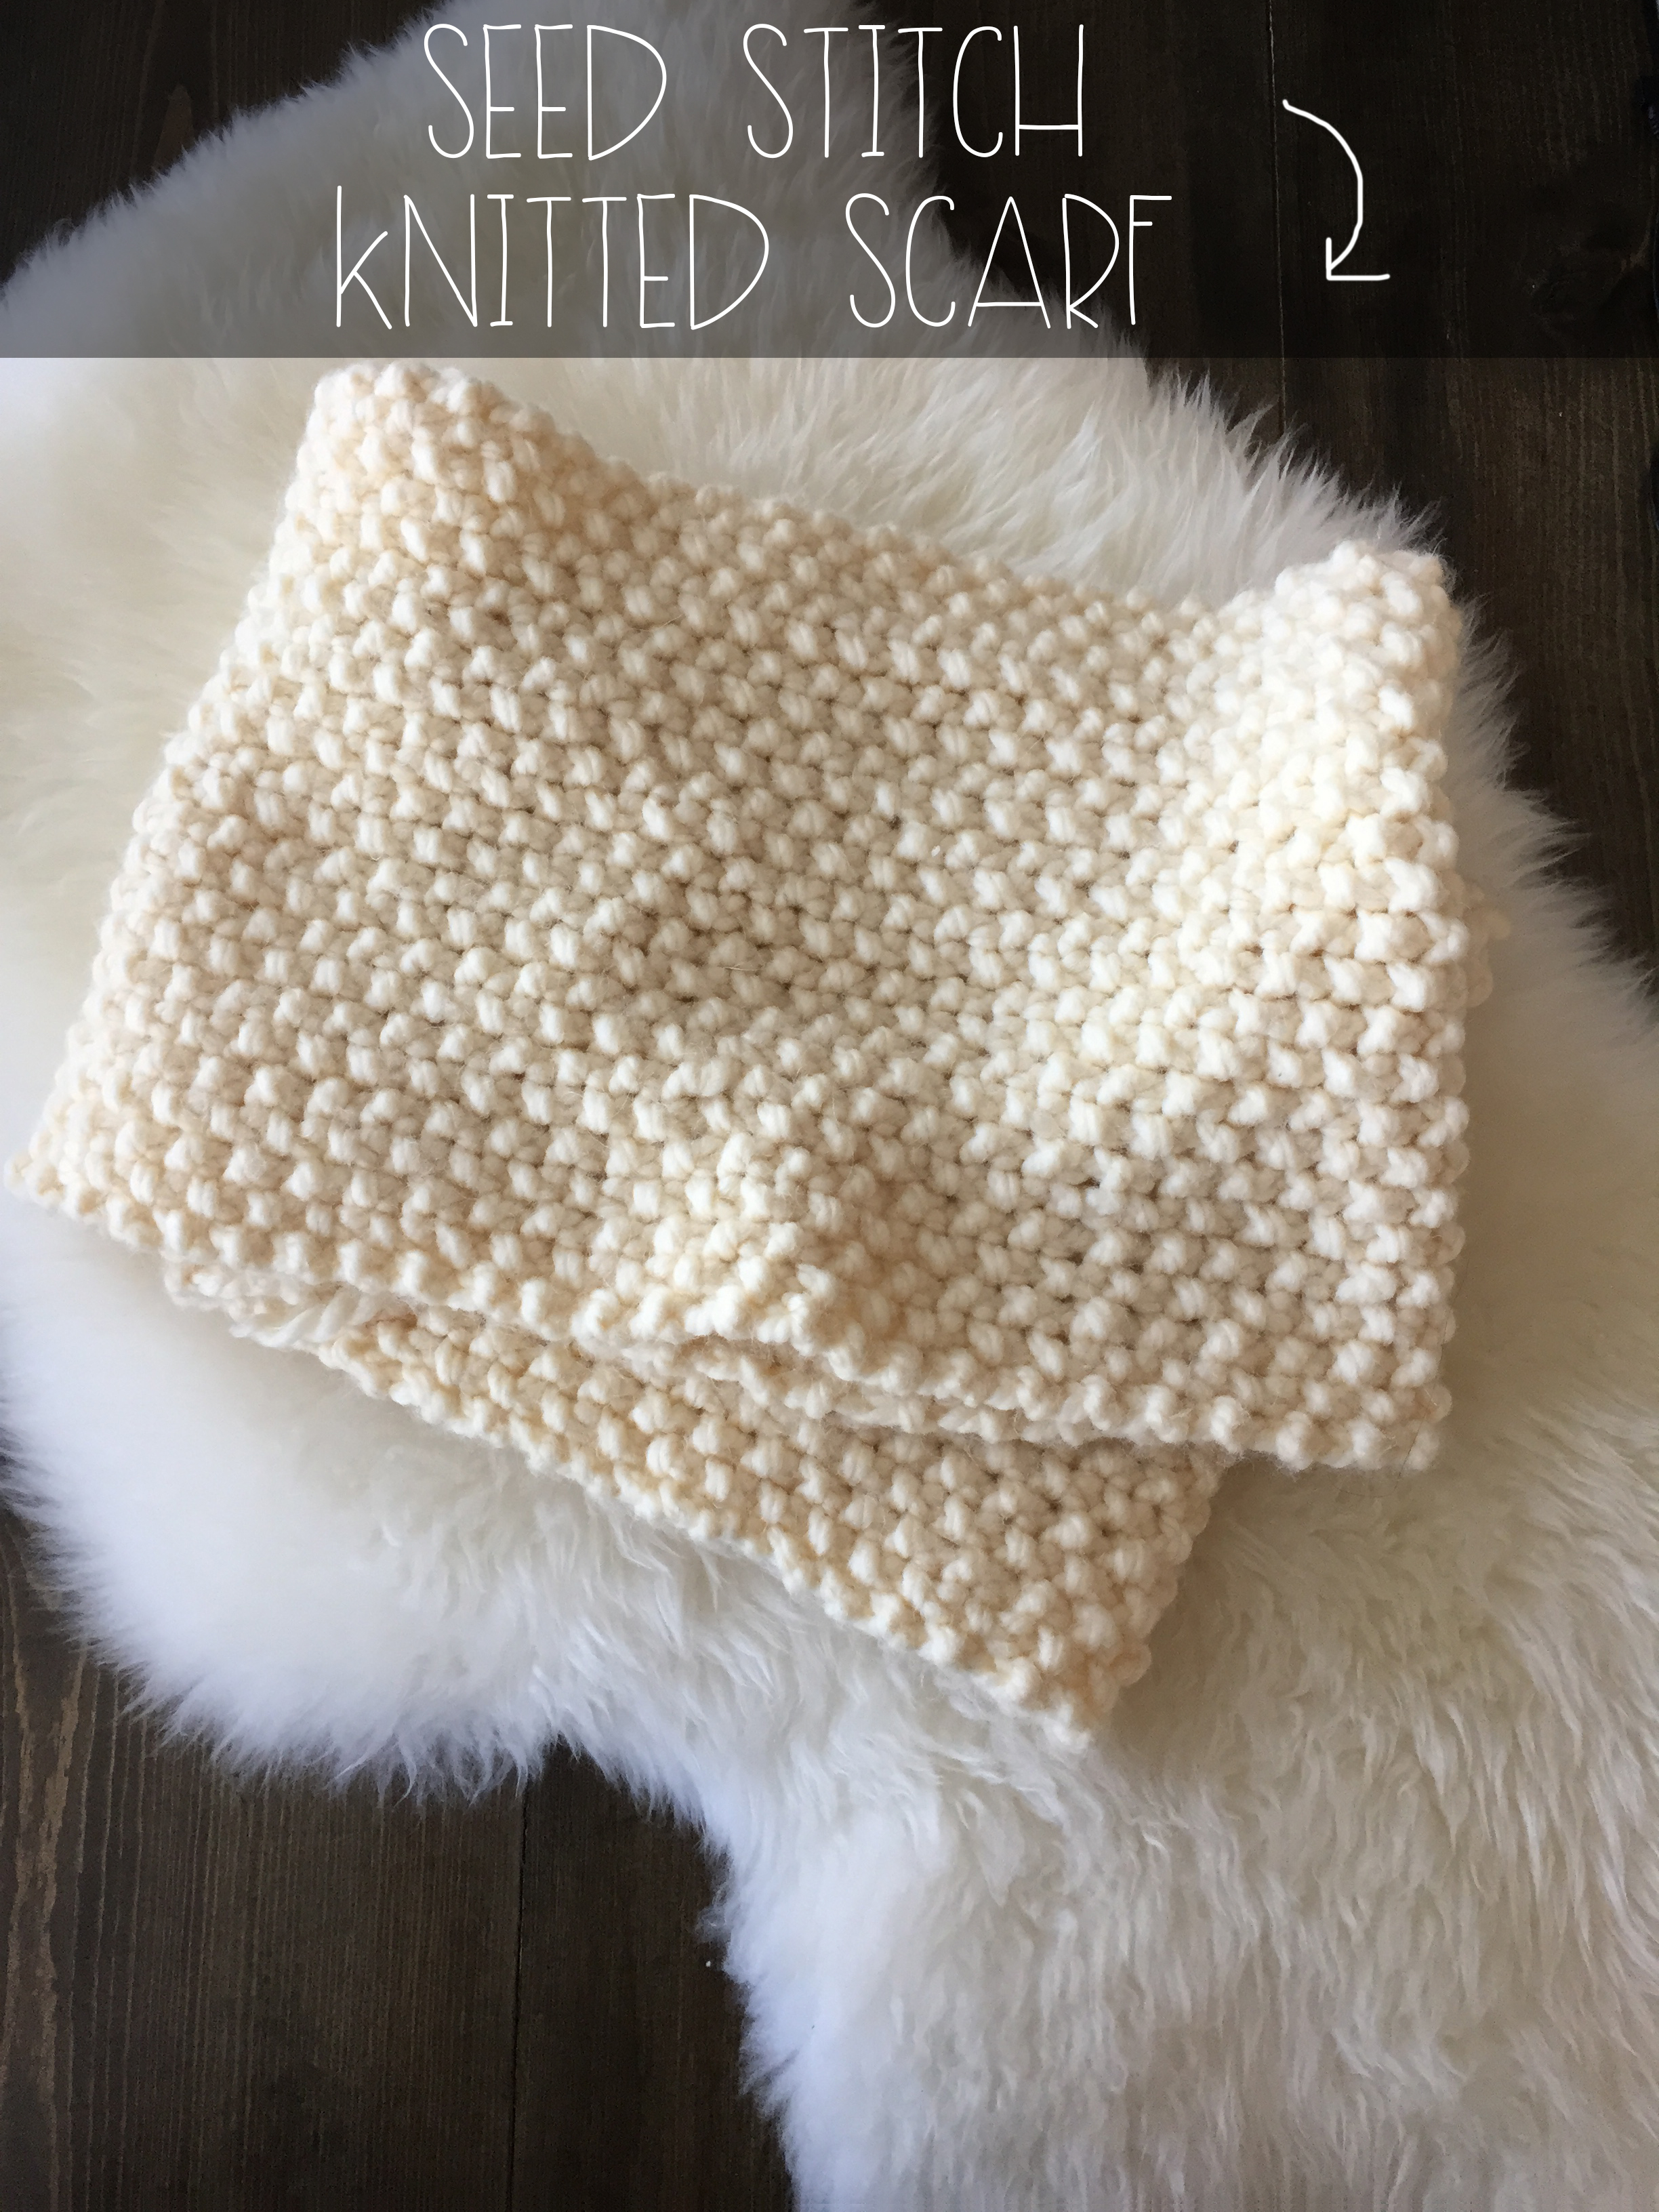 Seed Stitch Knitted Scarf